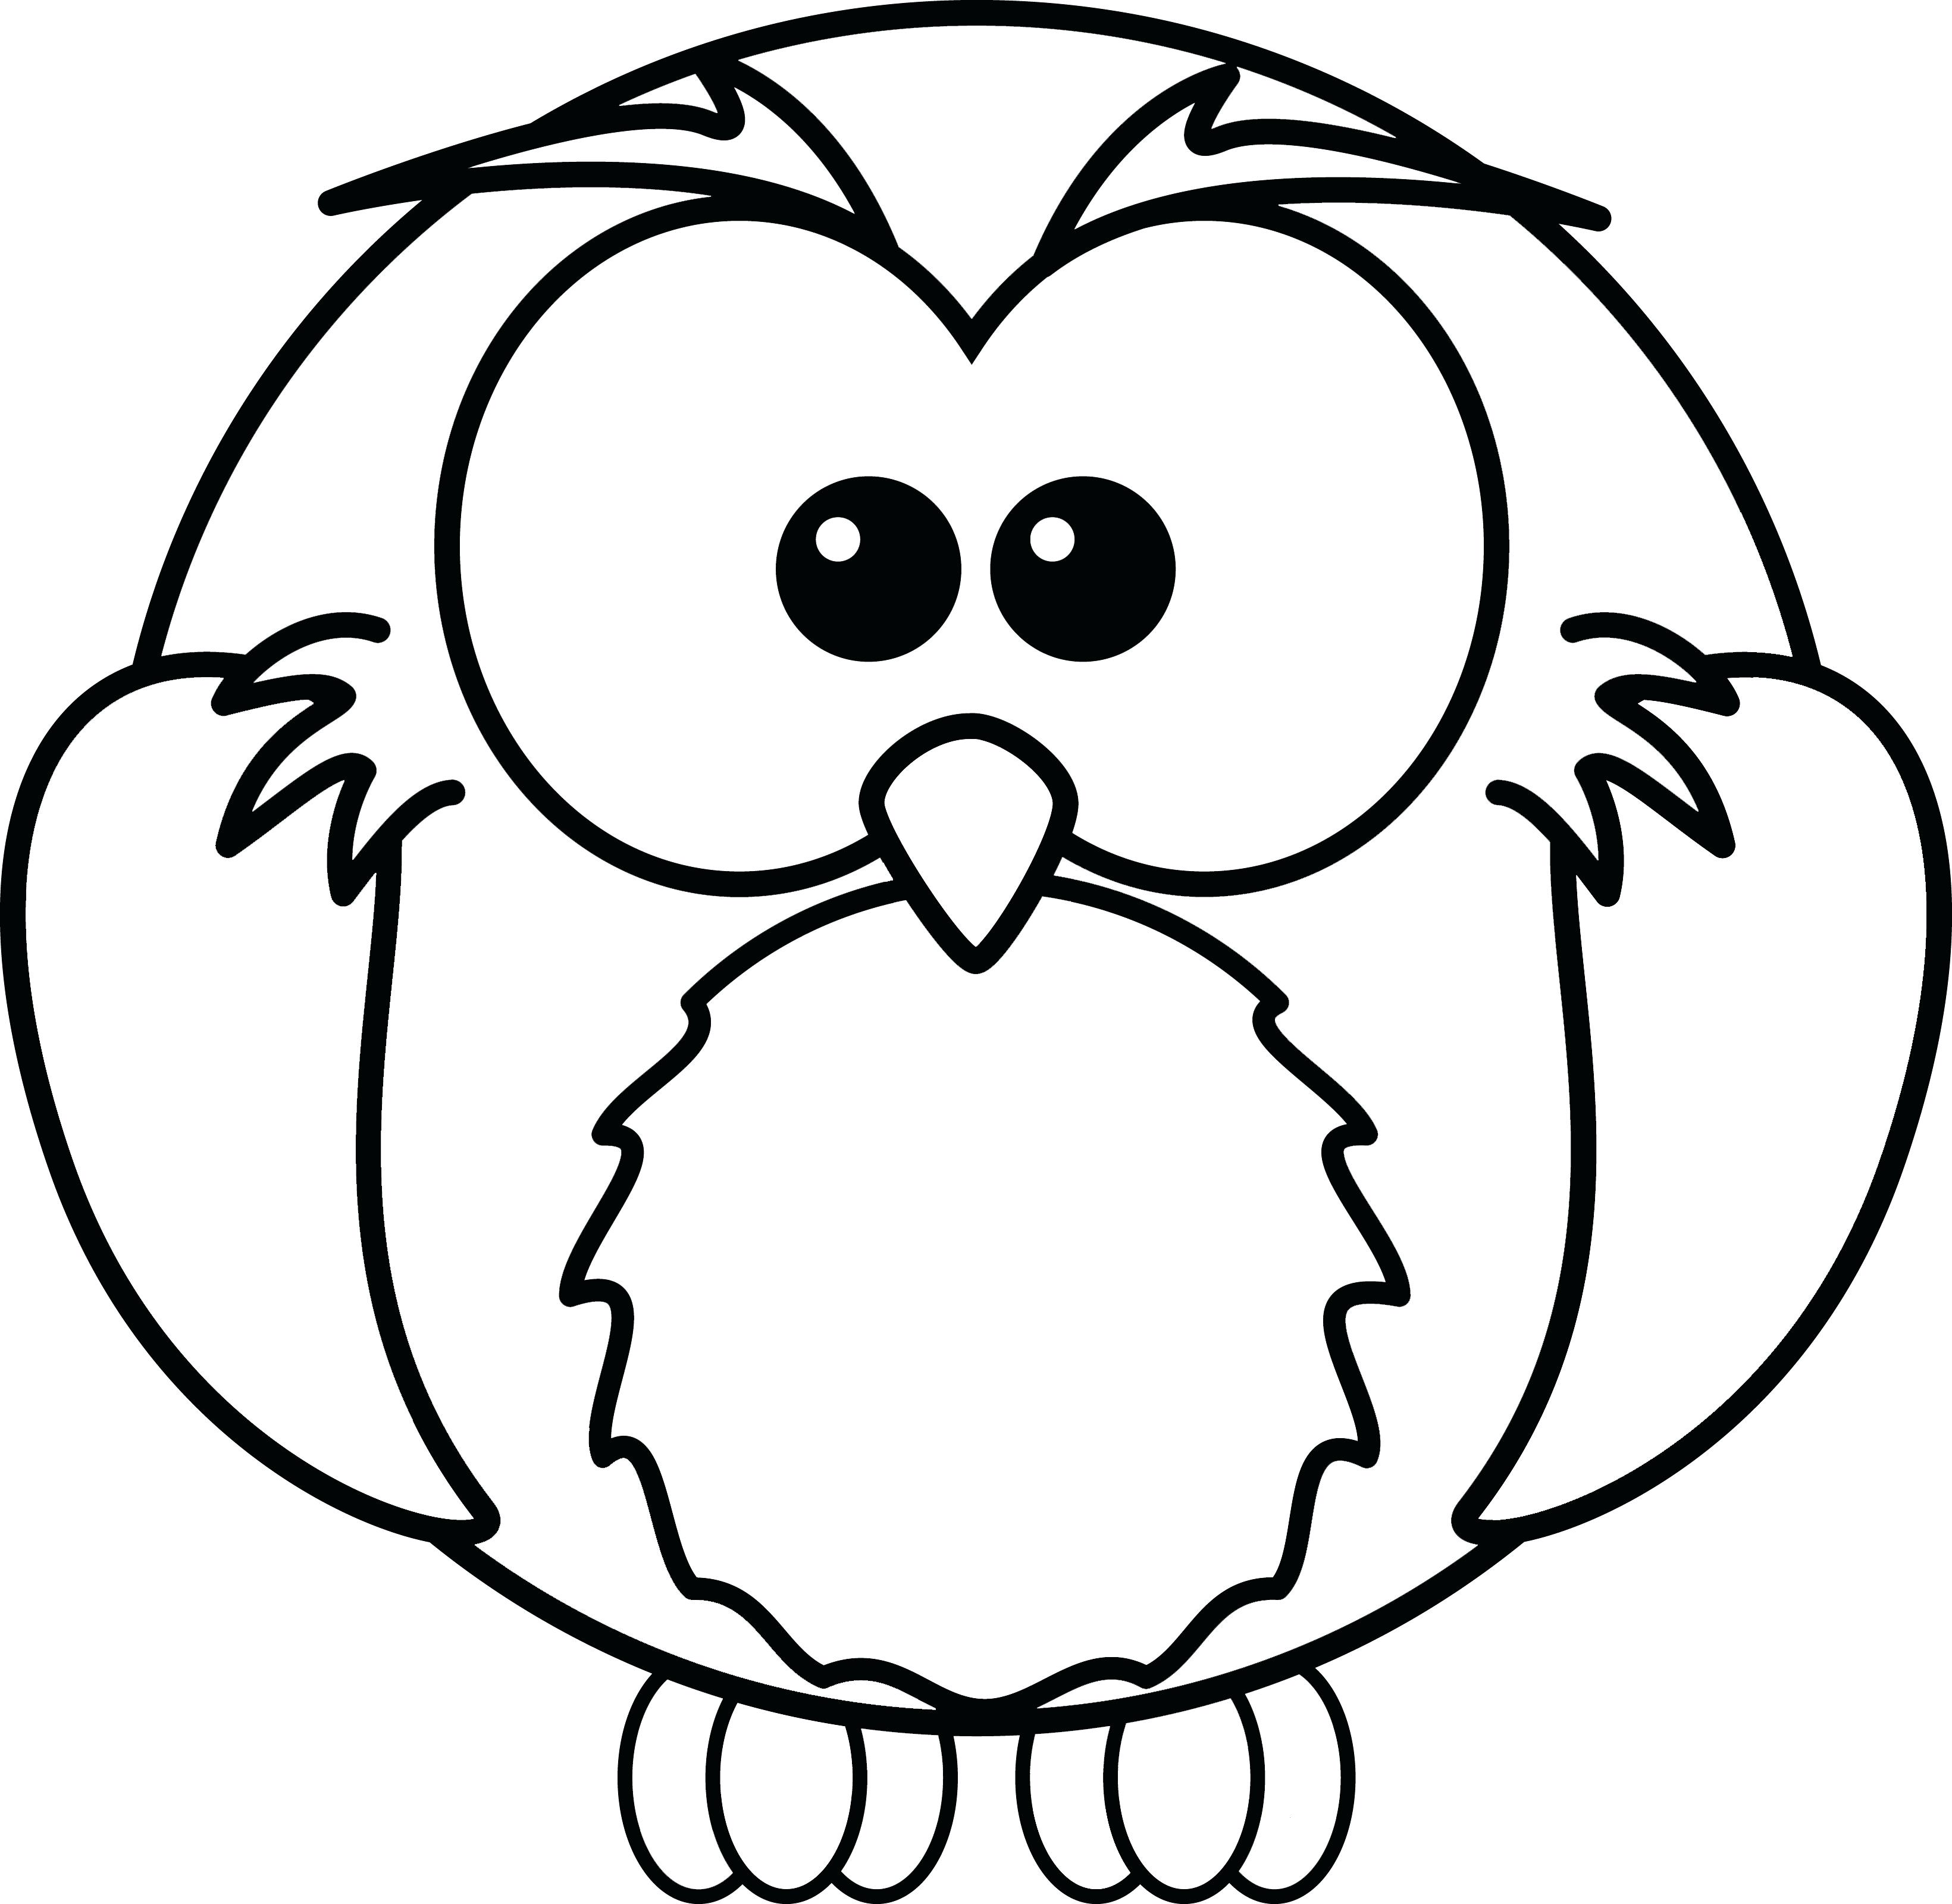 Christmas Coloring Pages Owls With Page Free Owl Printable Animage Me